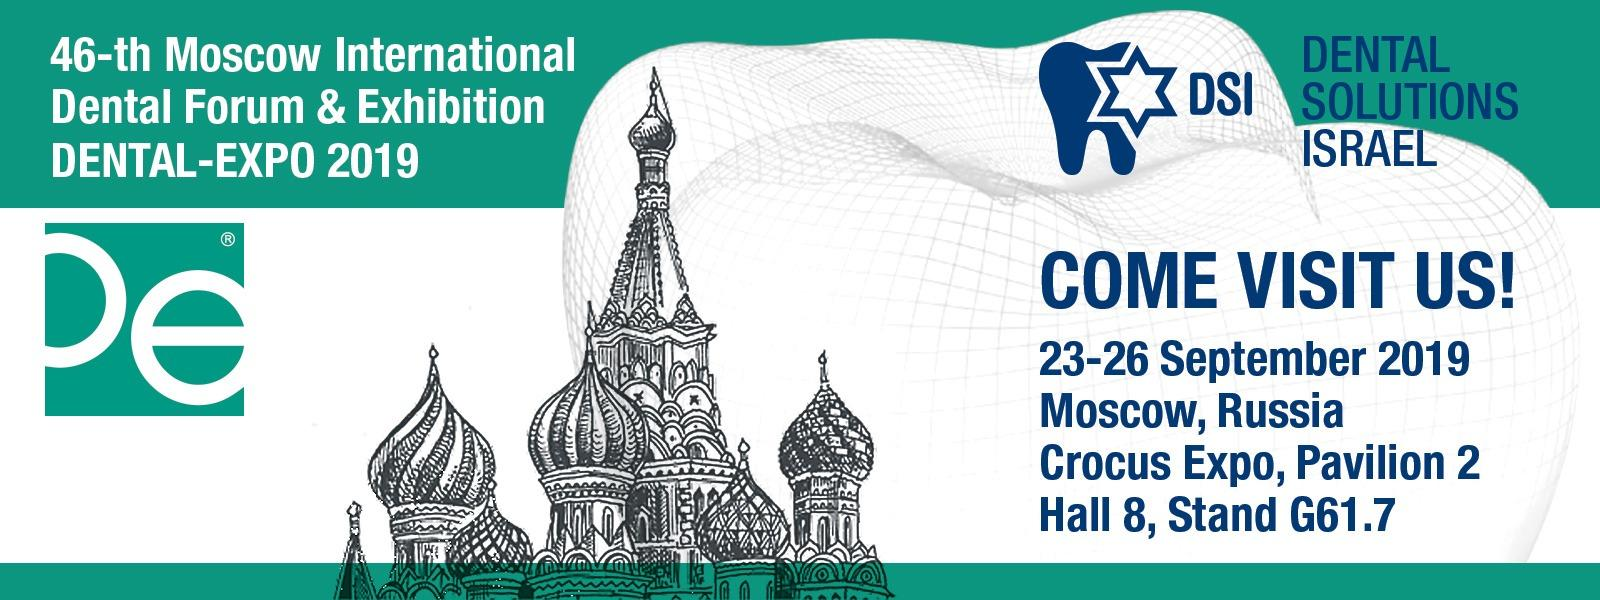 moscow2019-invintation Welcome to Dental Solutions Israel